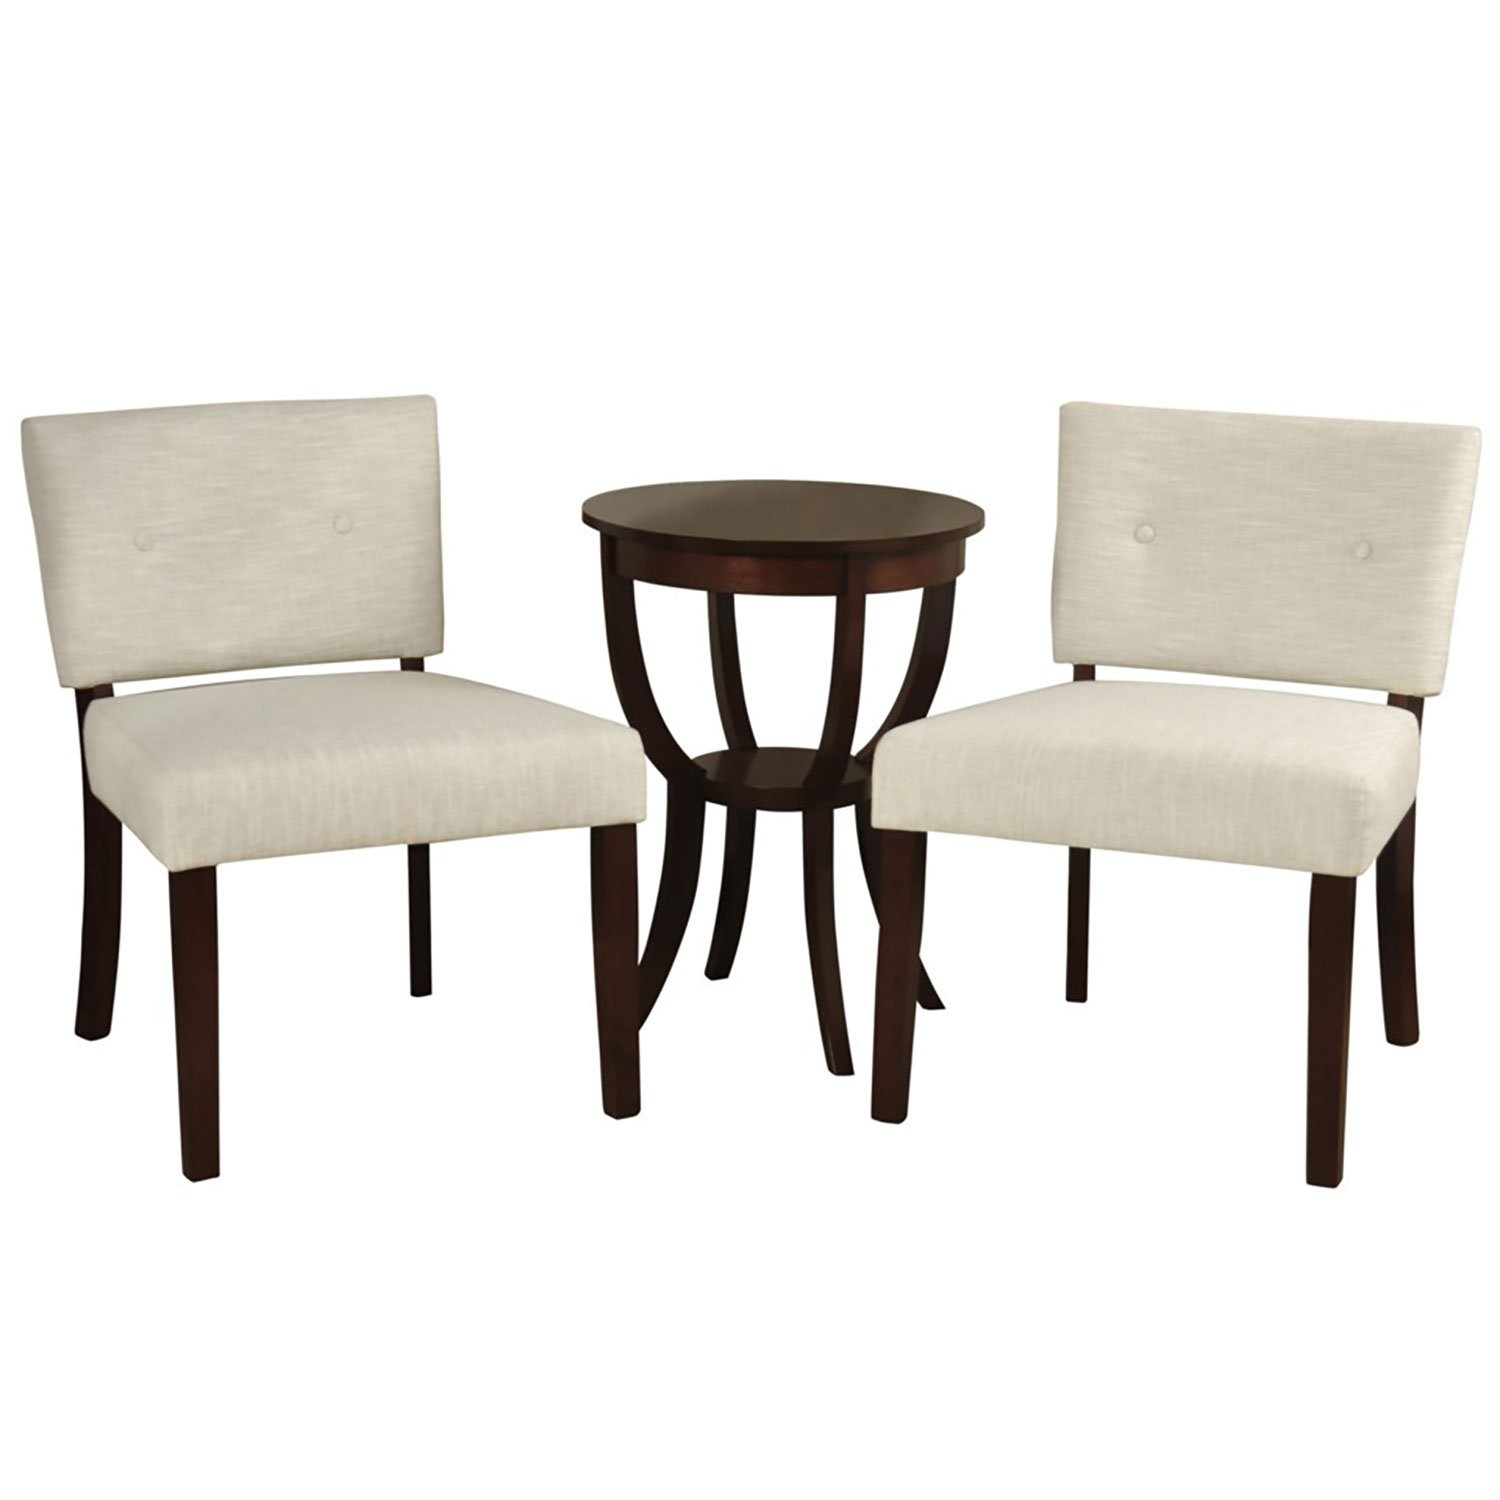 Stylecraft Button Back Pair Hardwood Slipper Chairs & Side Table (3 Piece Set)